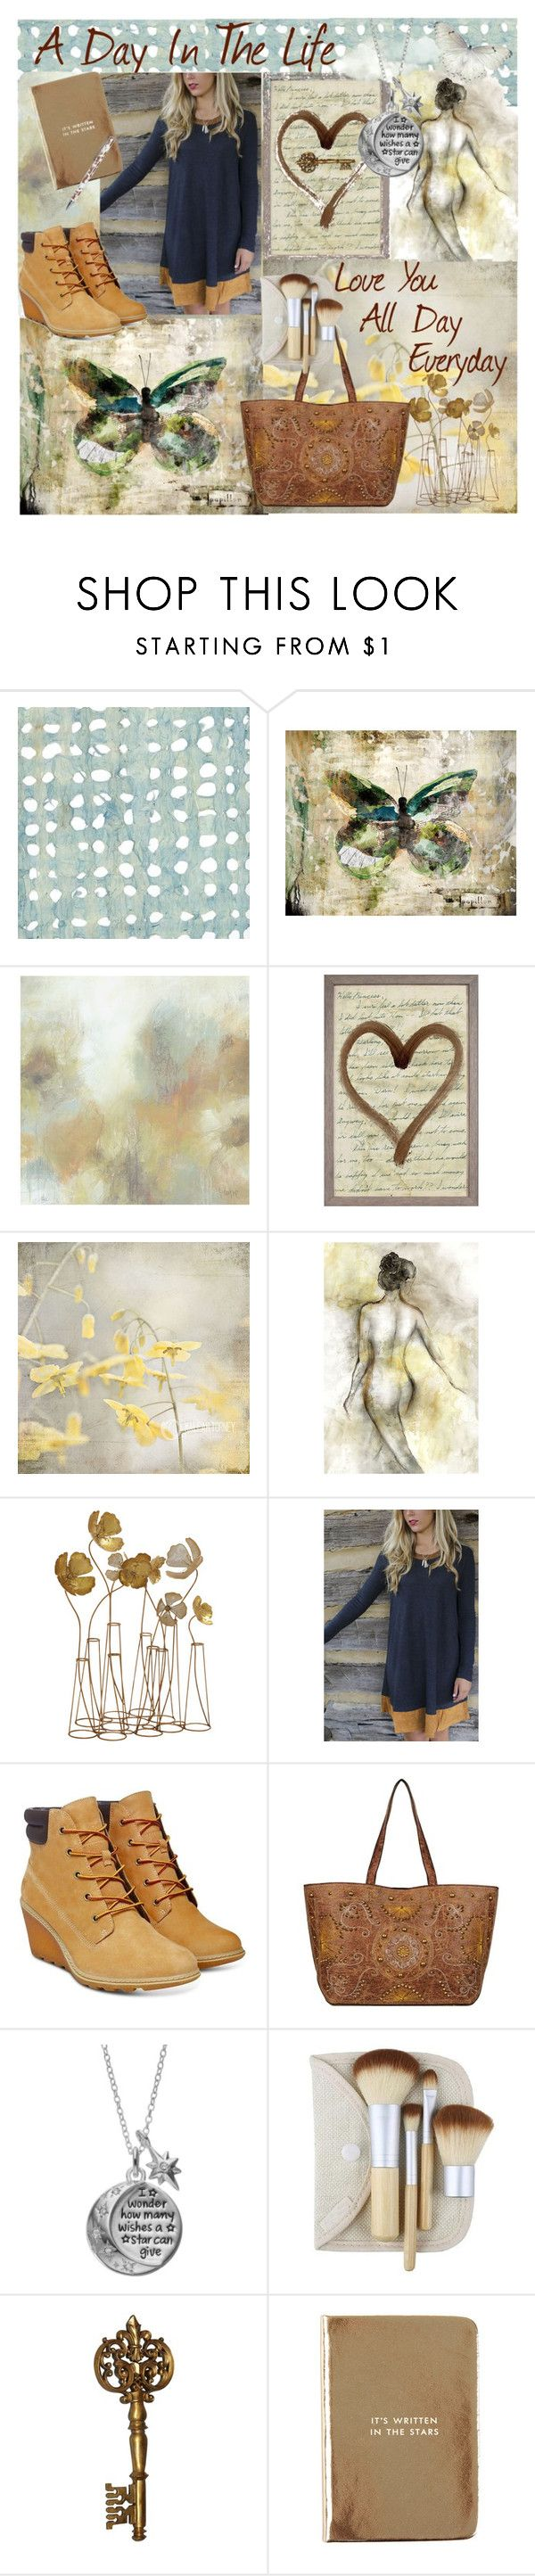 """A Day In The Life"" by dazzling-dazed-dayz ❤ liked on Polyvore featuring Leftbank Art, Pottery Barn, Natural Curiosities, Timberland, Disney, Kate Spade and Caroline Gardner"